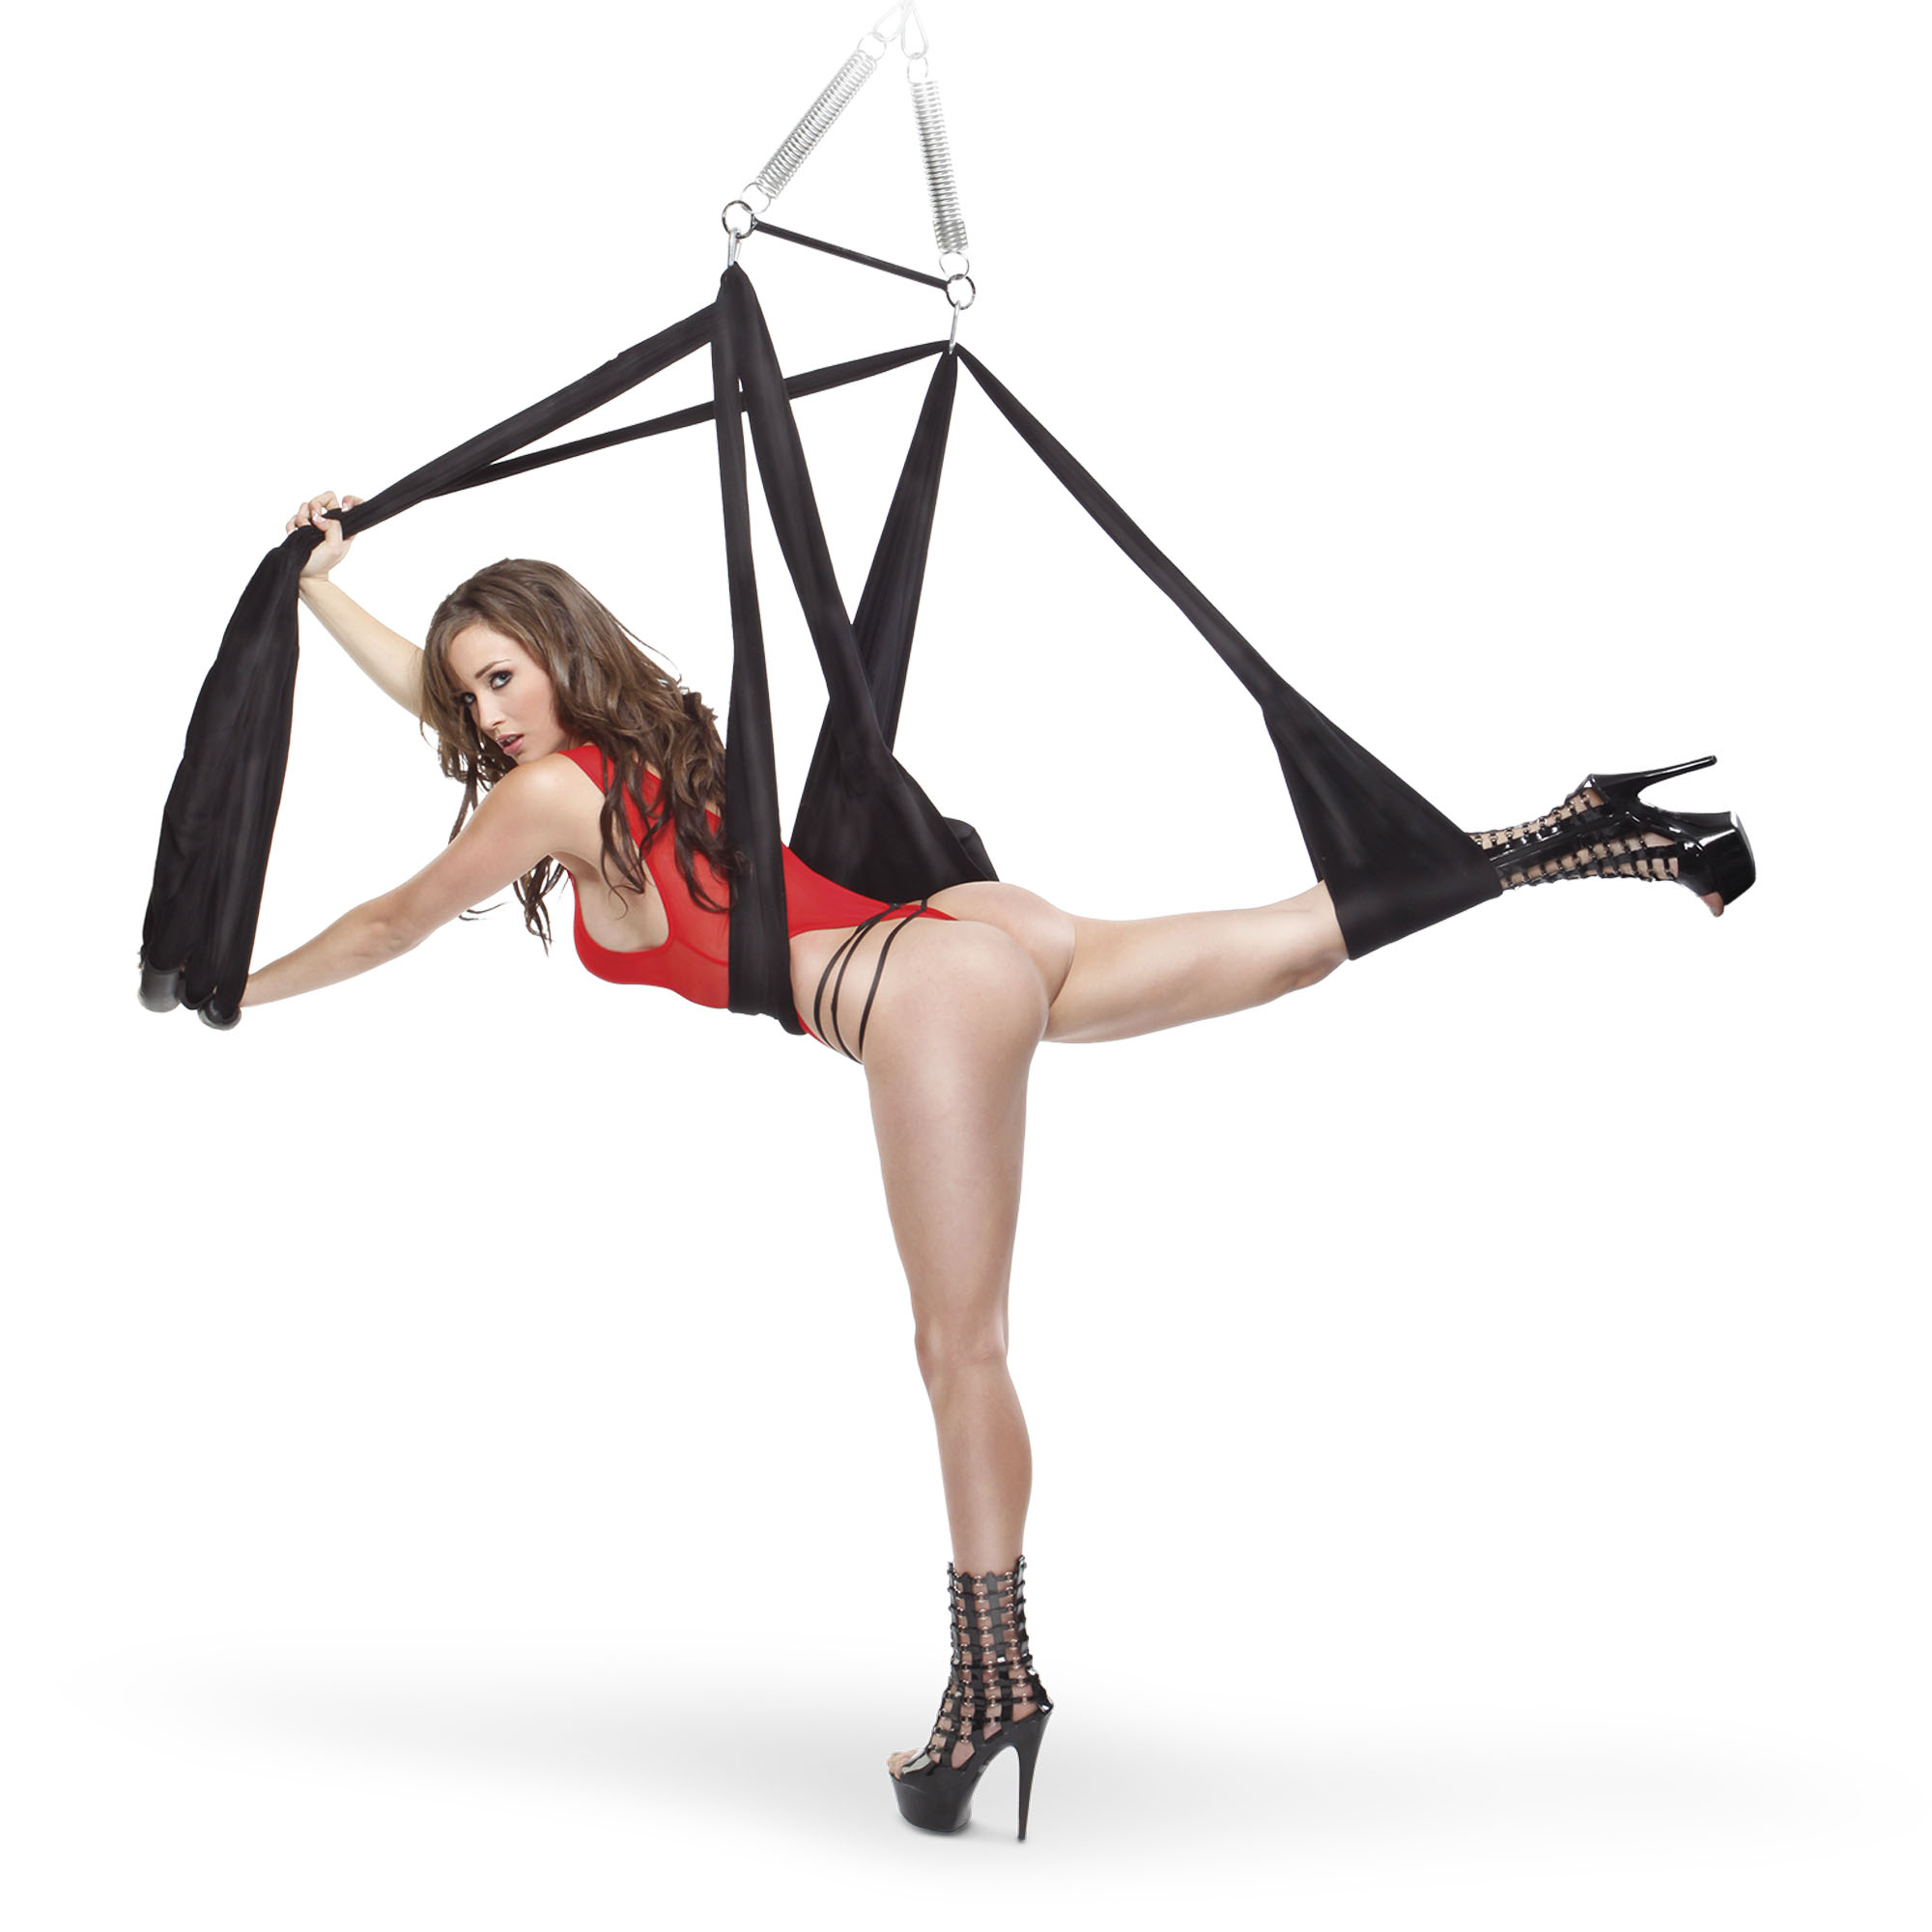 FETISH FANTASY YOGA SEX SWING